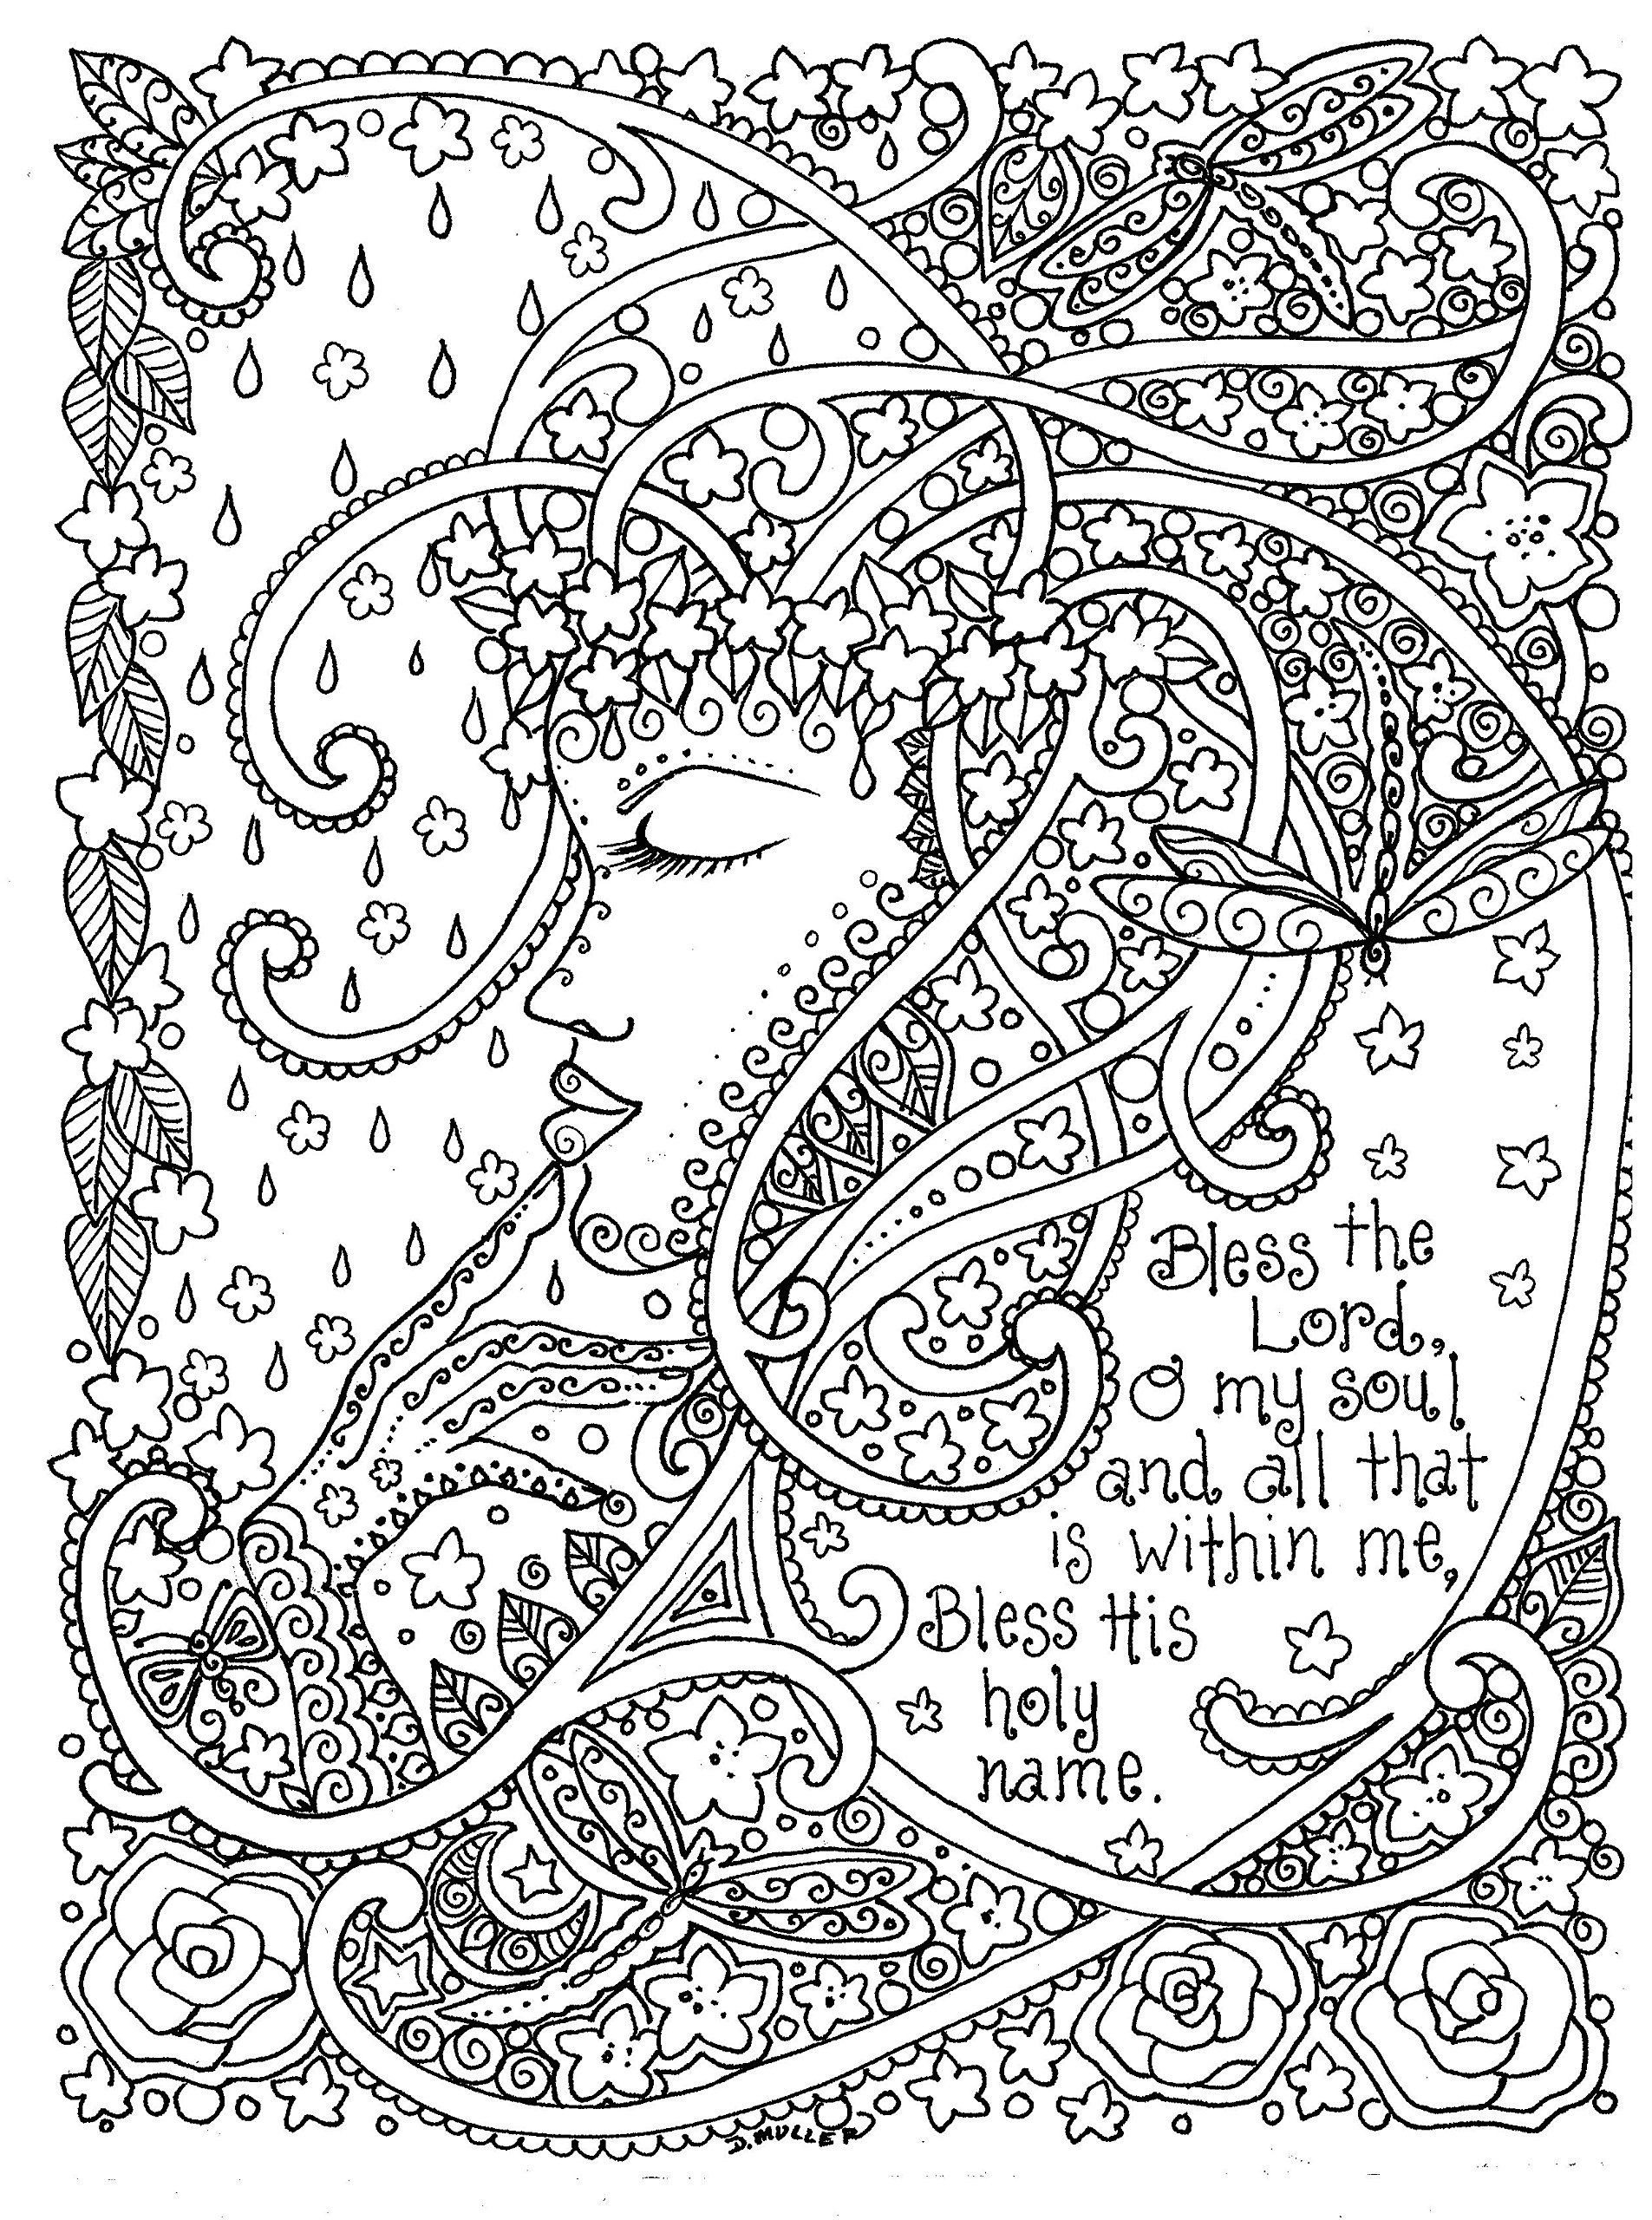 Monster Bilder Zum Ausmalen Frisch Adult Coloring Prayers to Color by Deborah Muller Inspirational Bild